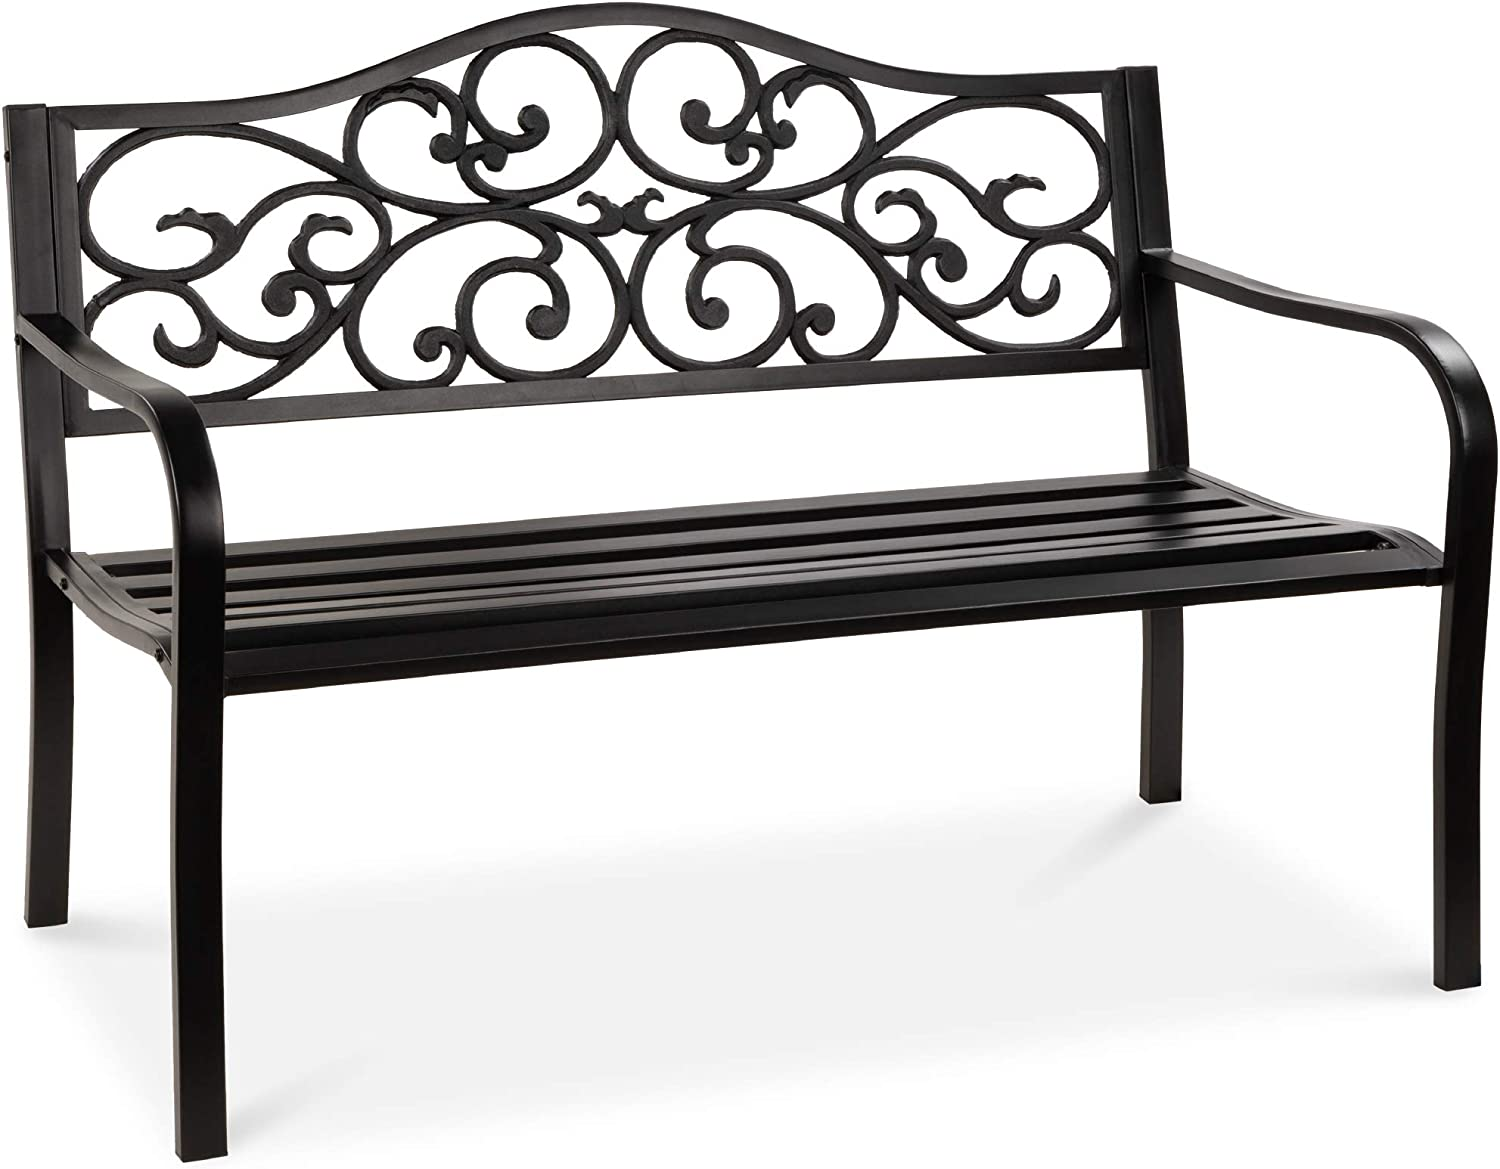 Best Choice Products 50in Classic Steel Garden Bench Chair Furniture for Outdoor, Patio, Yard, Lawn w/Floral Scroll Design - Black